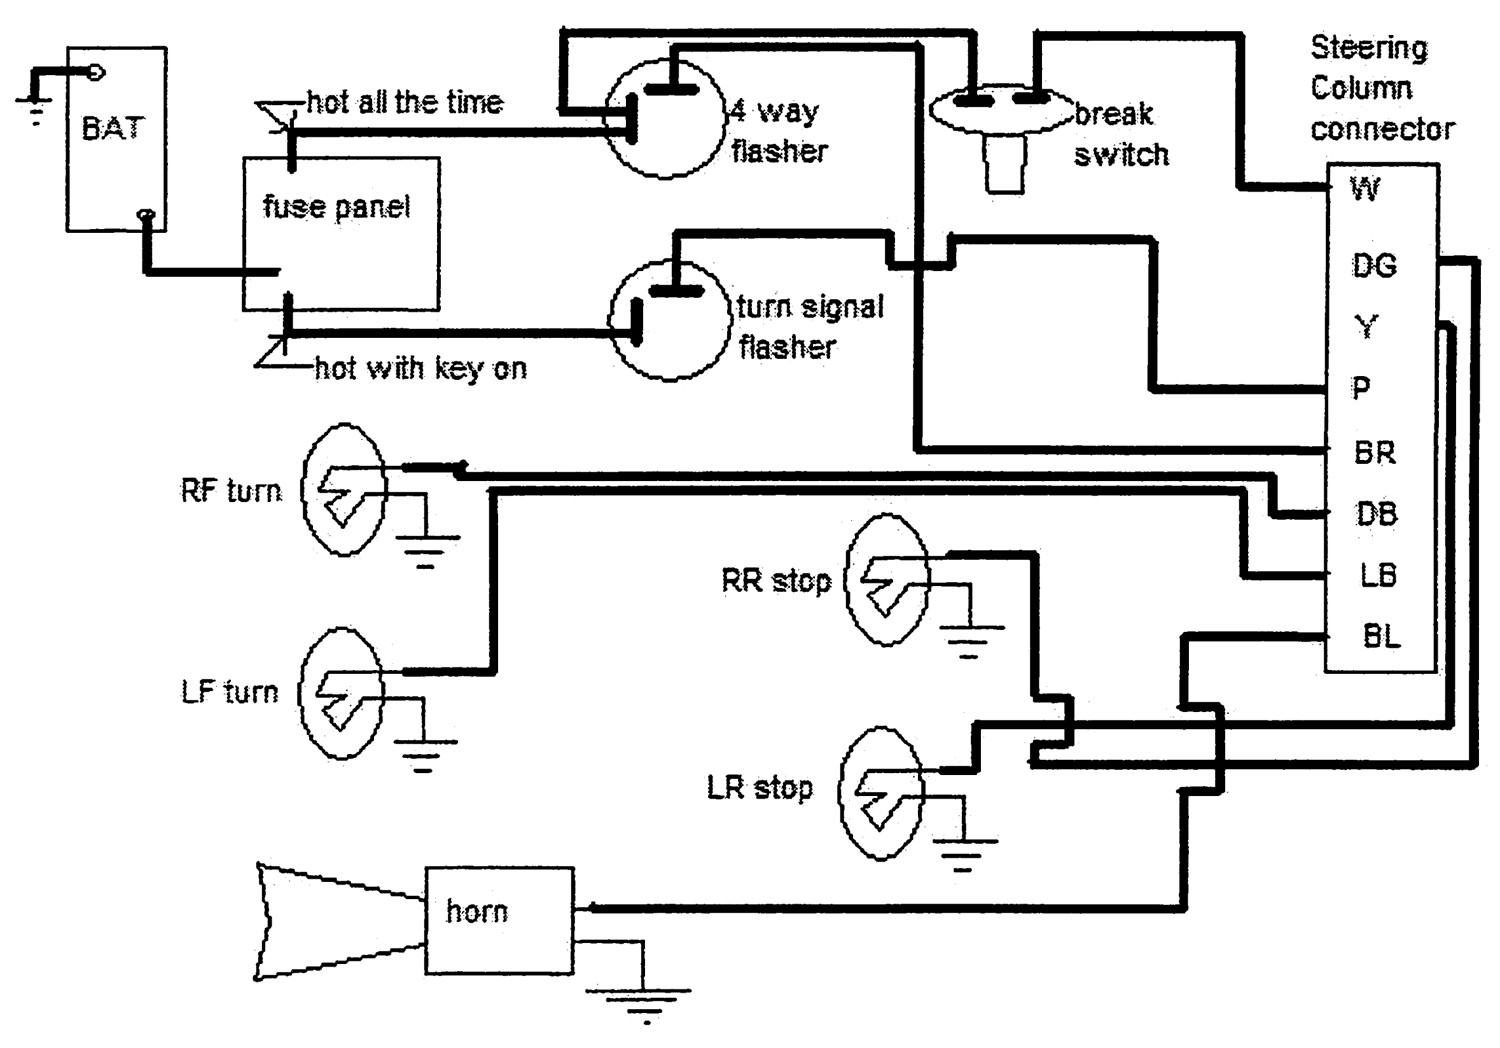 Ididit Steering Column Wiring Diagram | Wiring Diagram Image